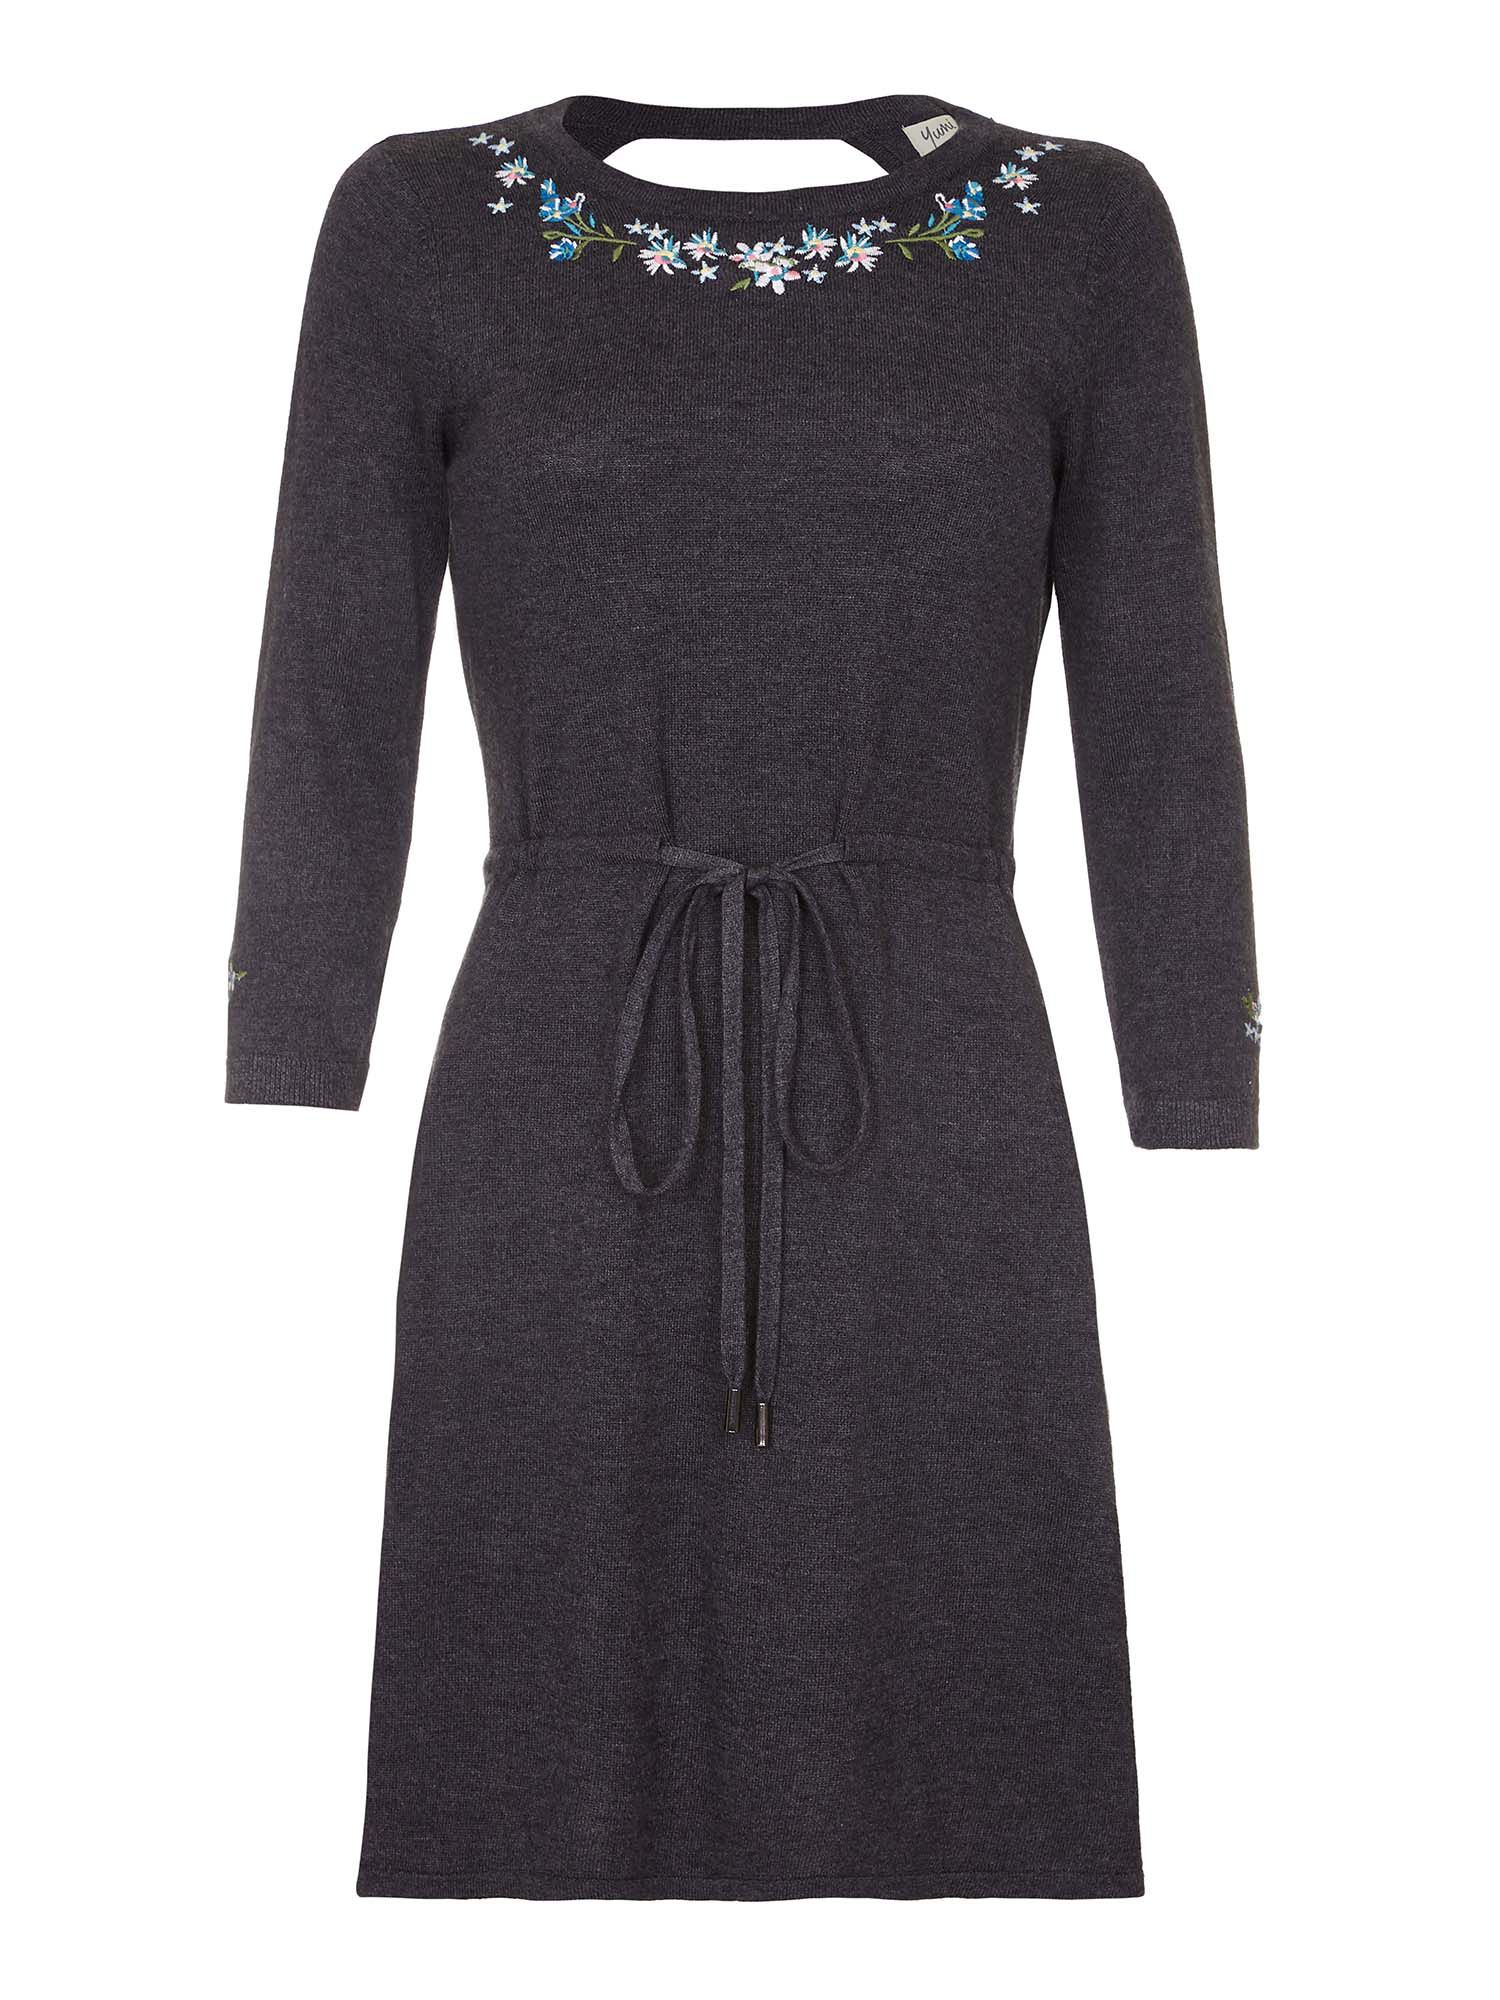 Yumi Knitted Dress with Floral Embroidery, Grey